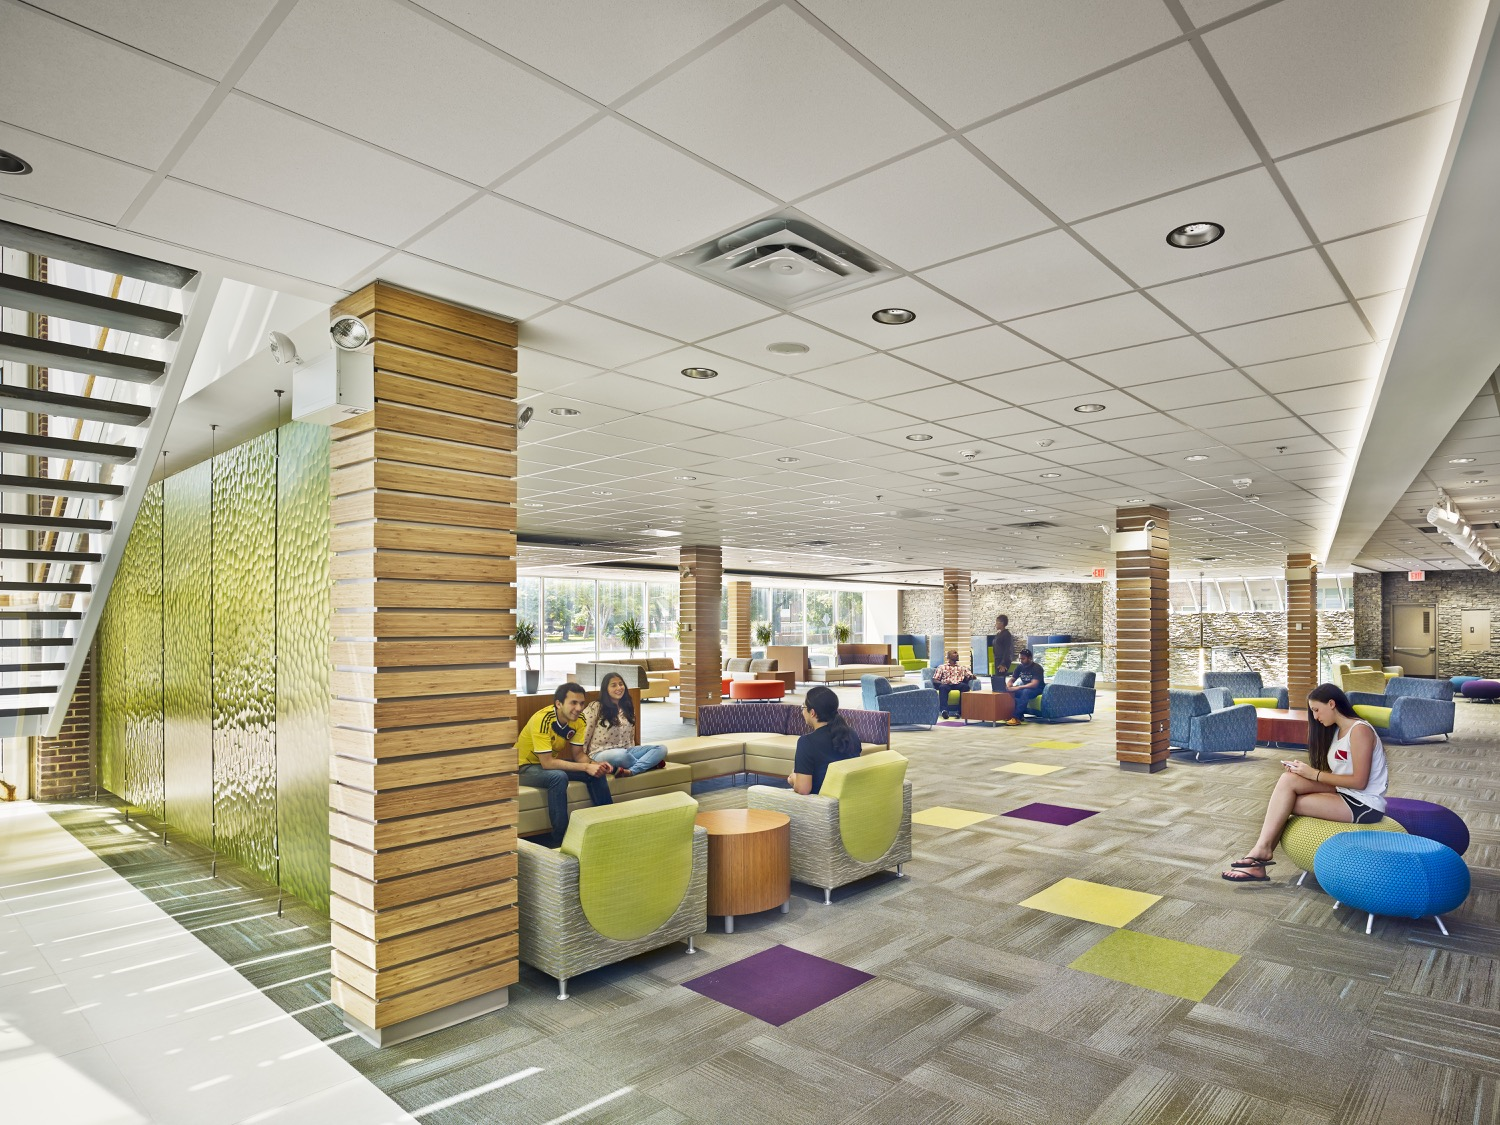 Bernardon university of delaware perkins student center - University of maryland interior design ...